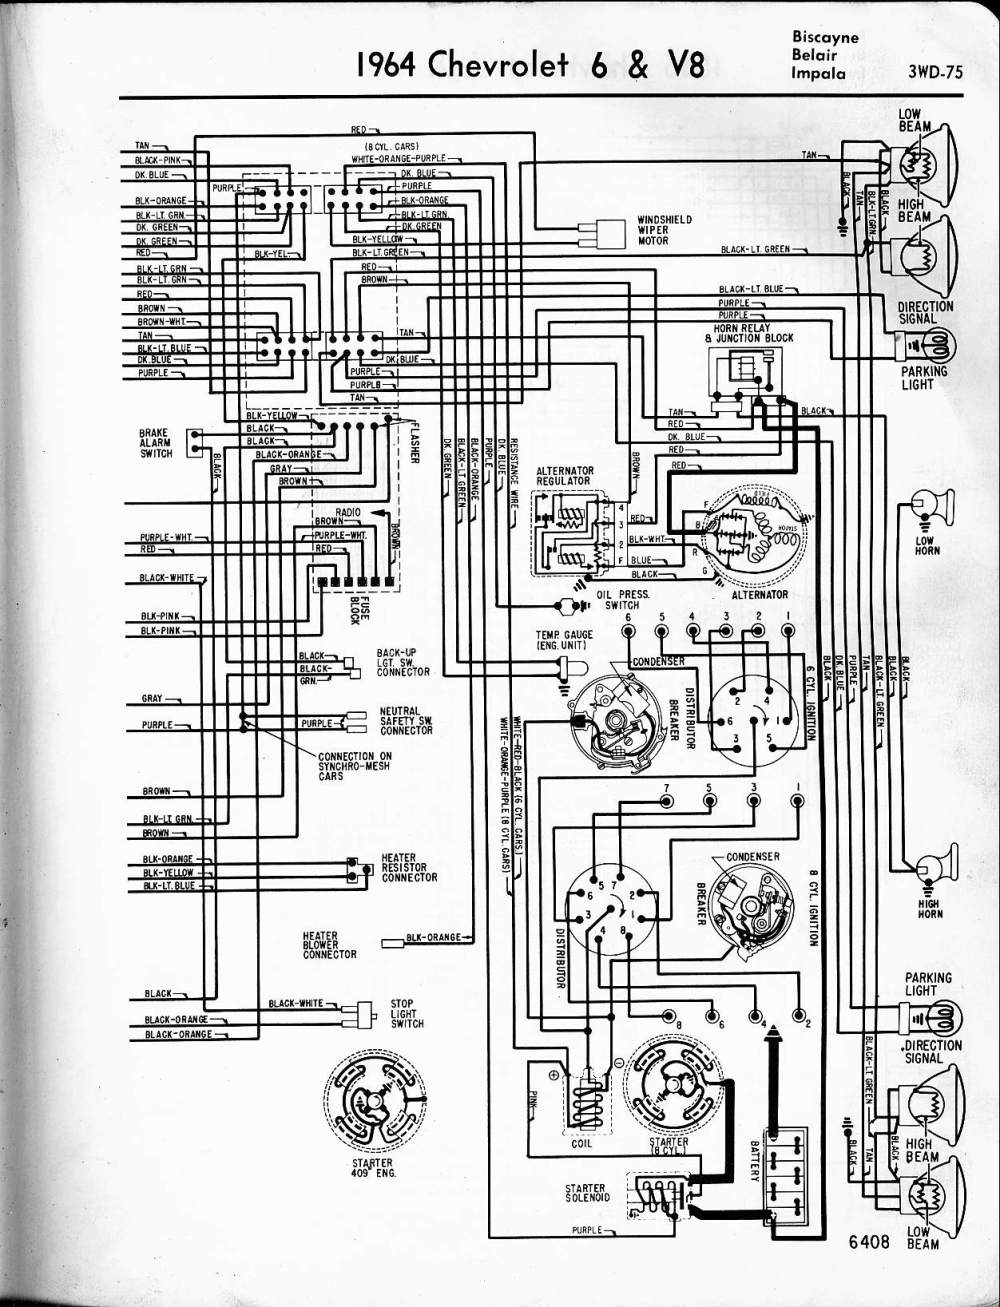 medium resolution of 1964 impala fuse panel diagram wiring diagram autovehicle1964 chevelle fuse box diagram wiring diagram1964 impala fuse